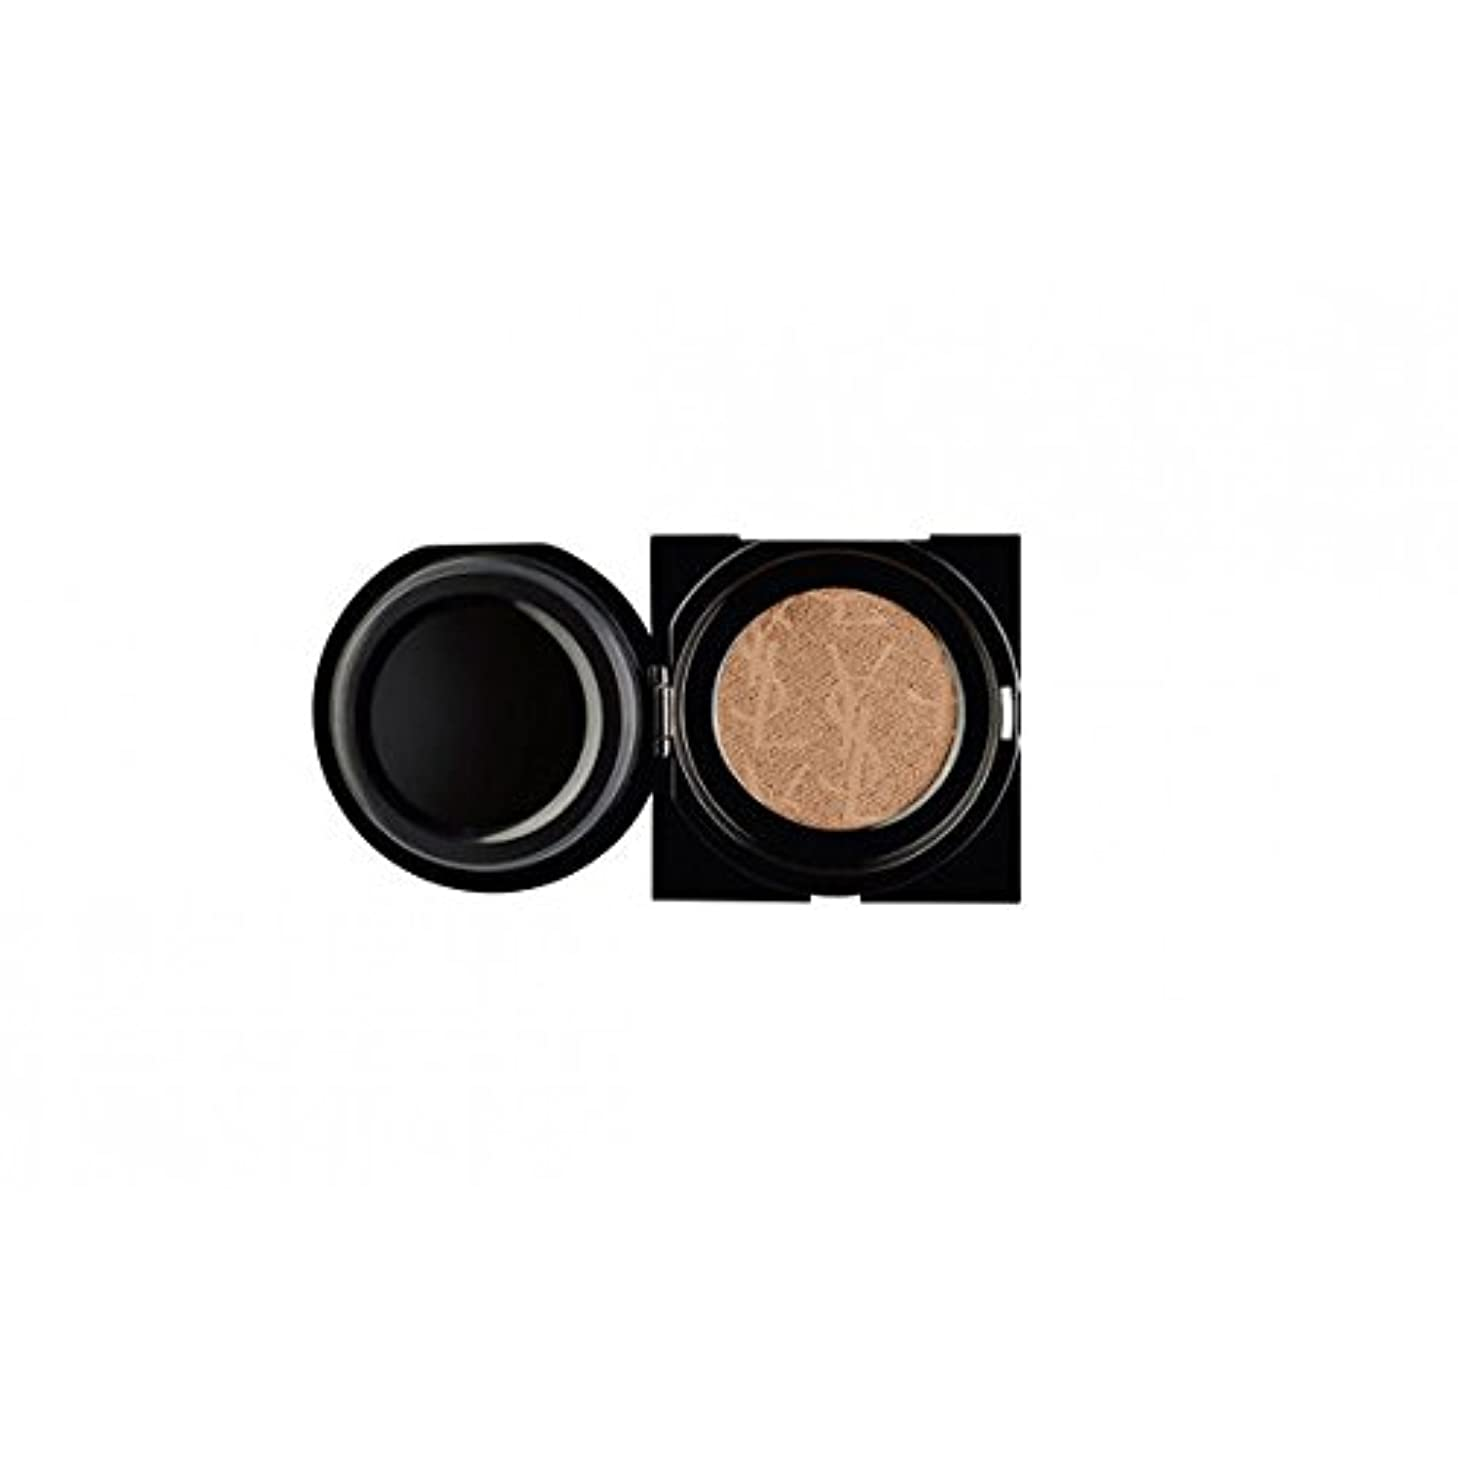 自動化見分ける過言イヴサンローラン Touche Eclat Le Cushion Liquid Foundation Compact Refill - #B60 Amber 15g/0.53oz並行輸入品